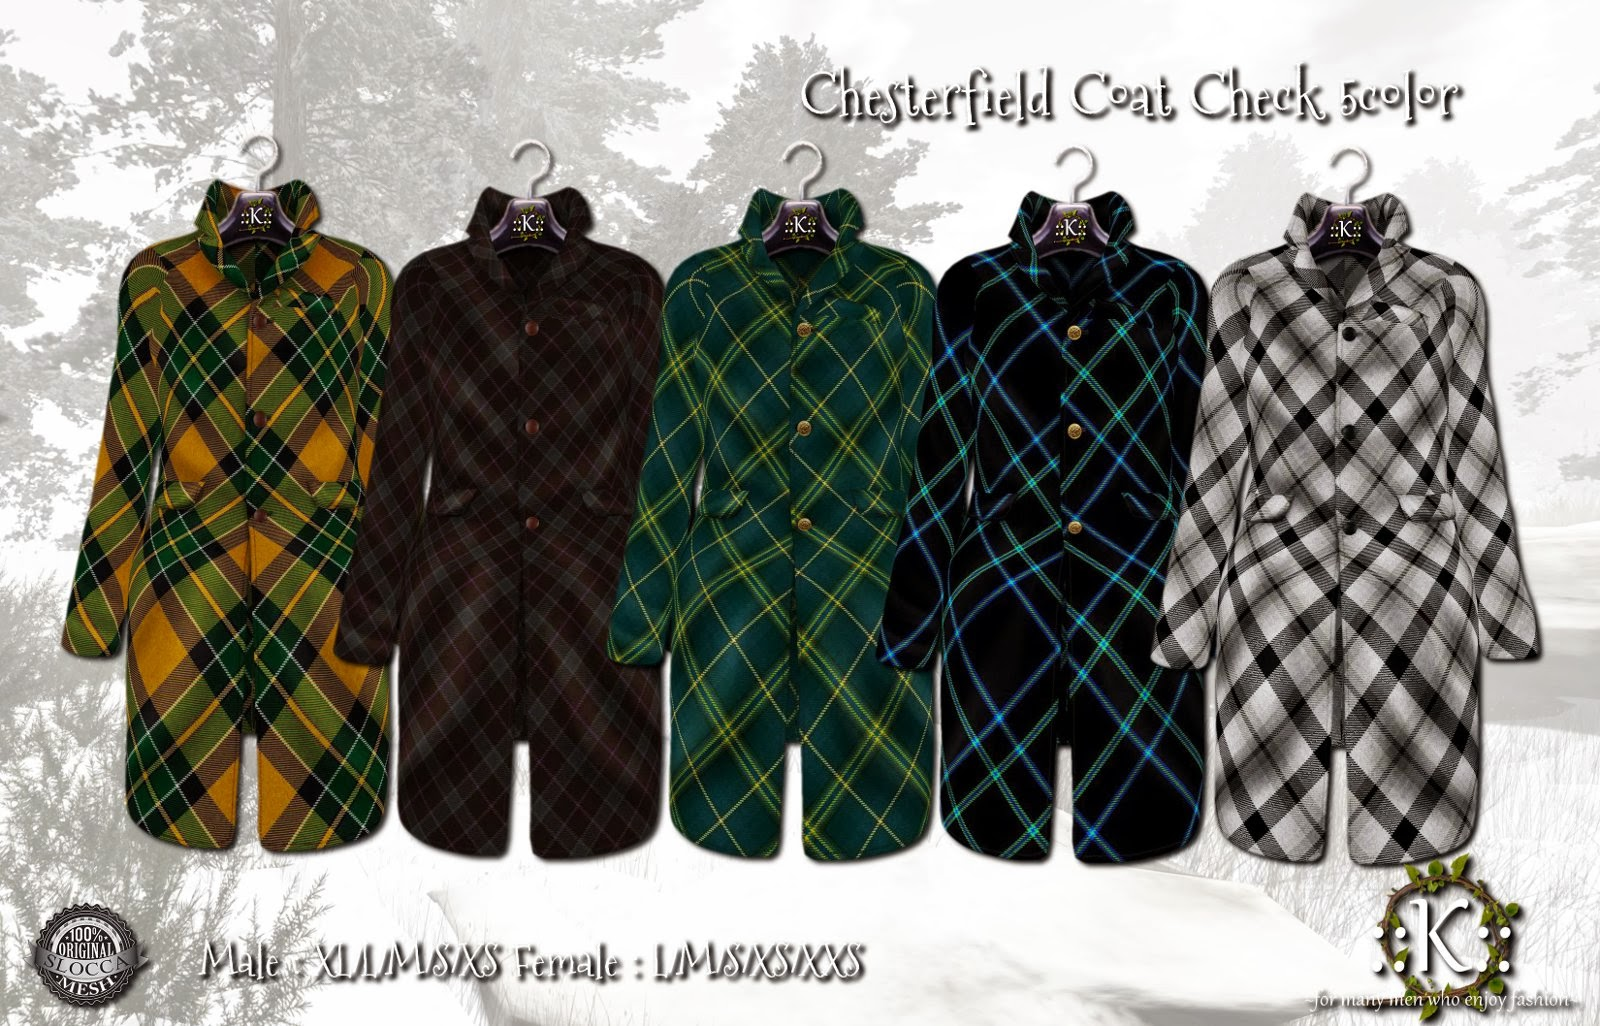 K Chesterfield Check 5color